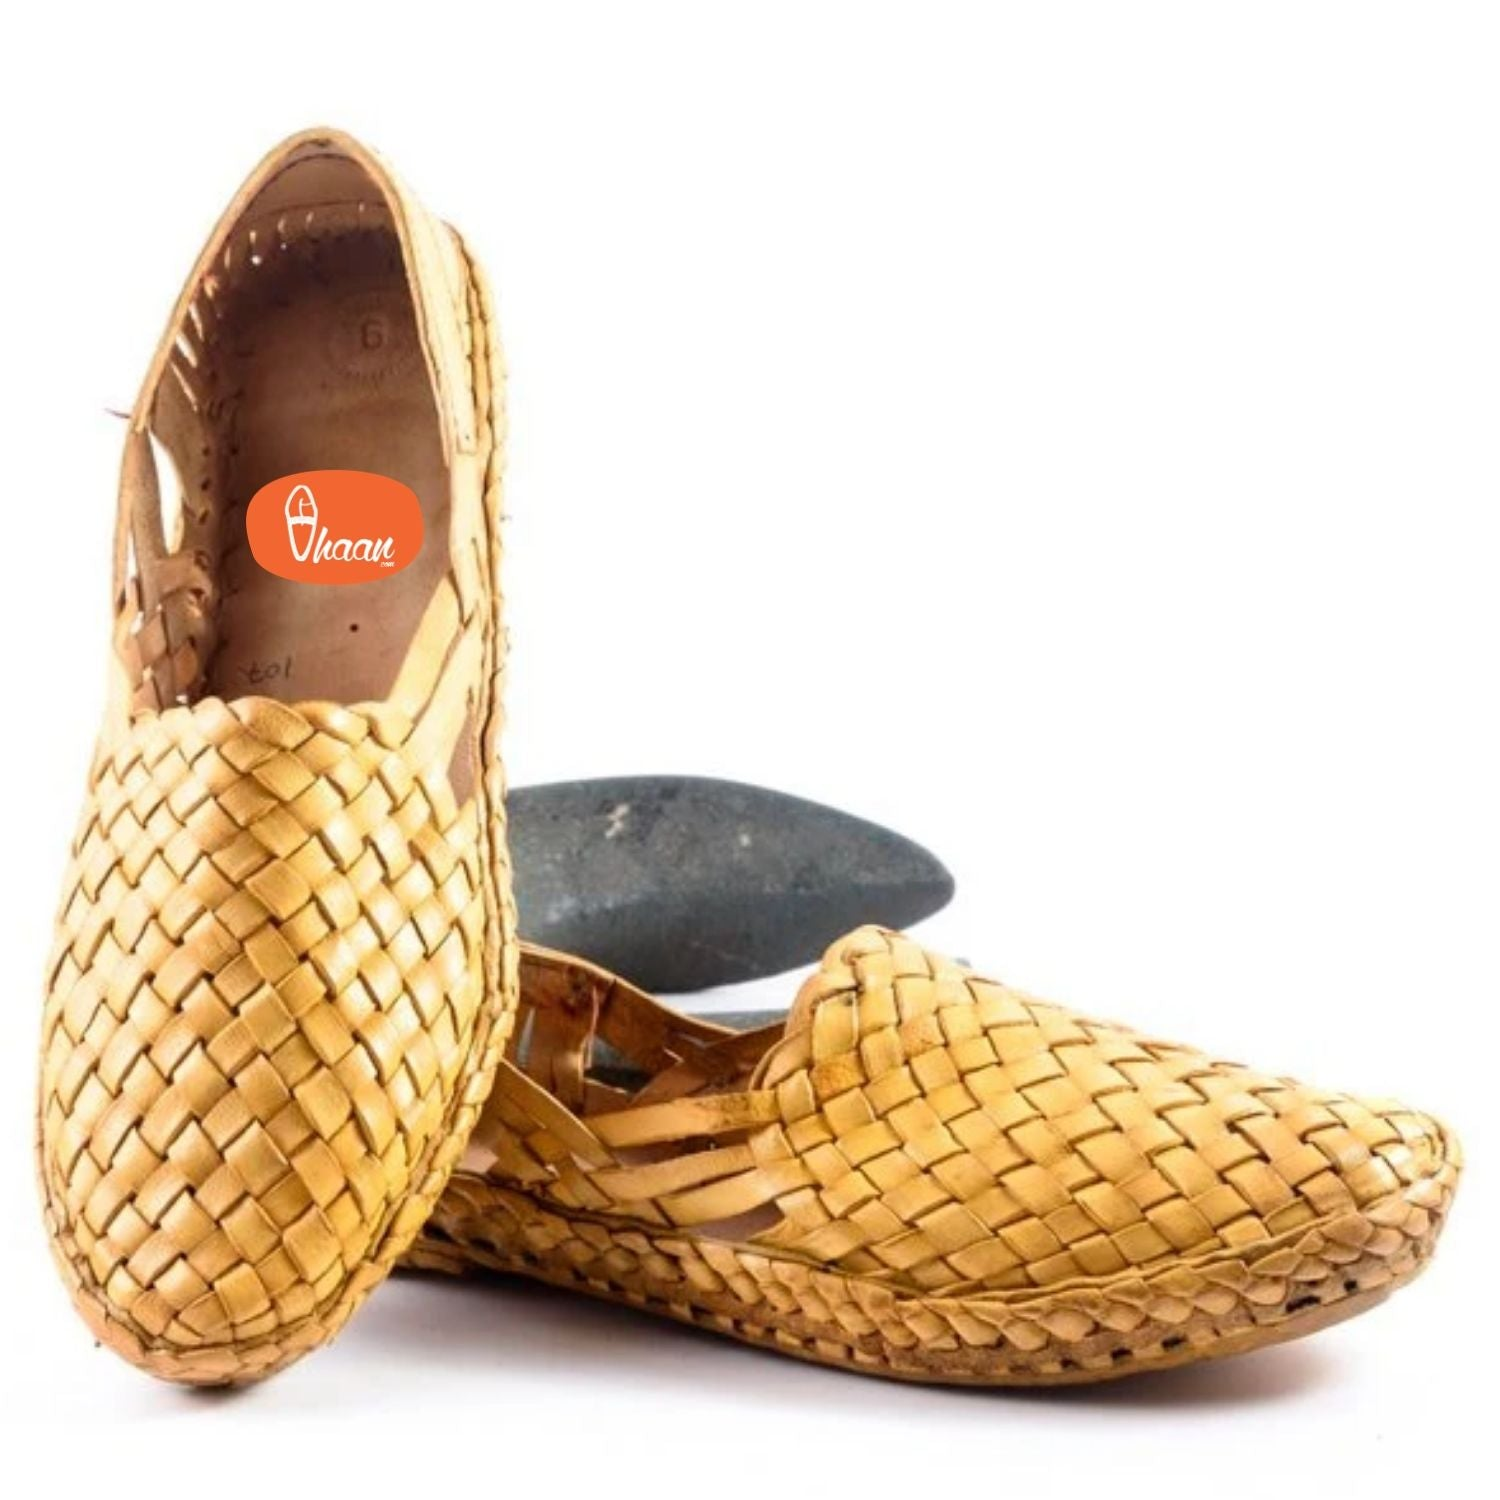 Authentic, Hand Stitched, Pure Leather, Net Full Shoes, for Men